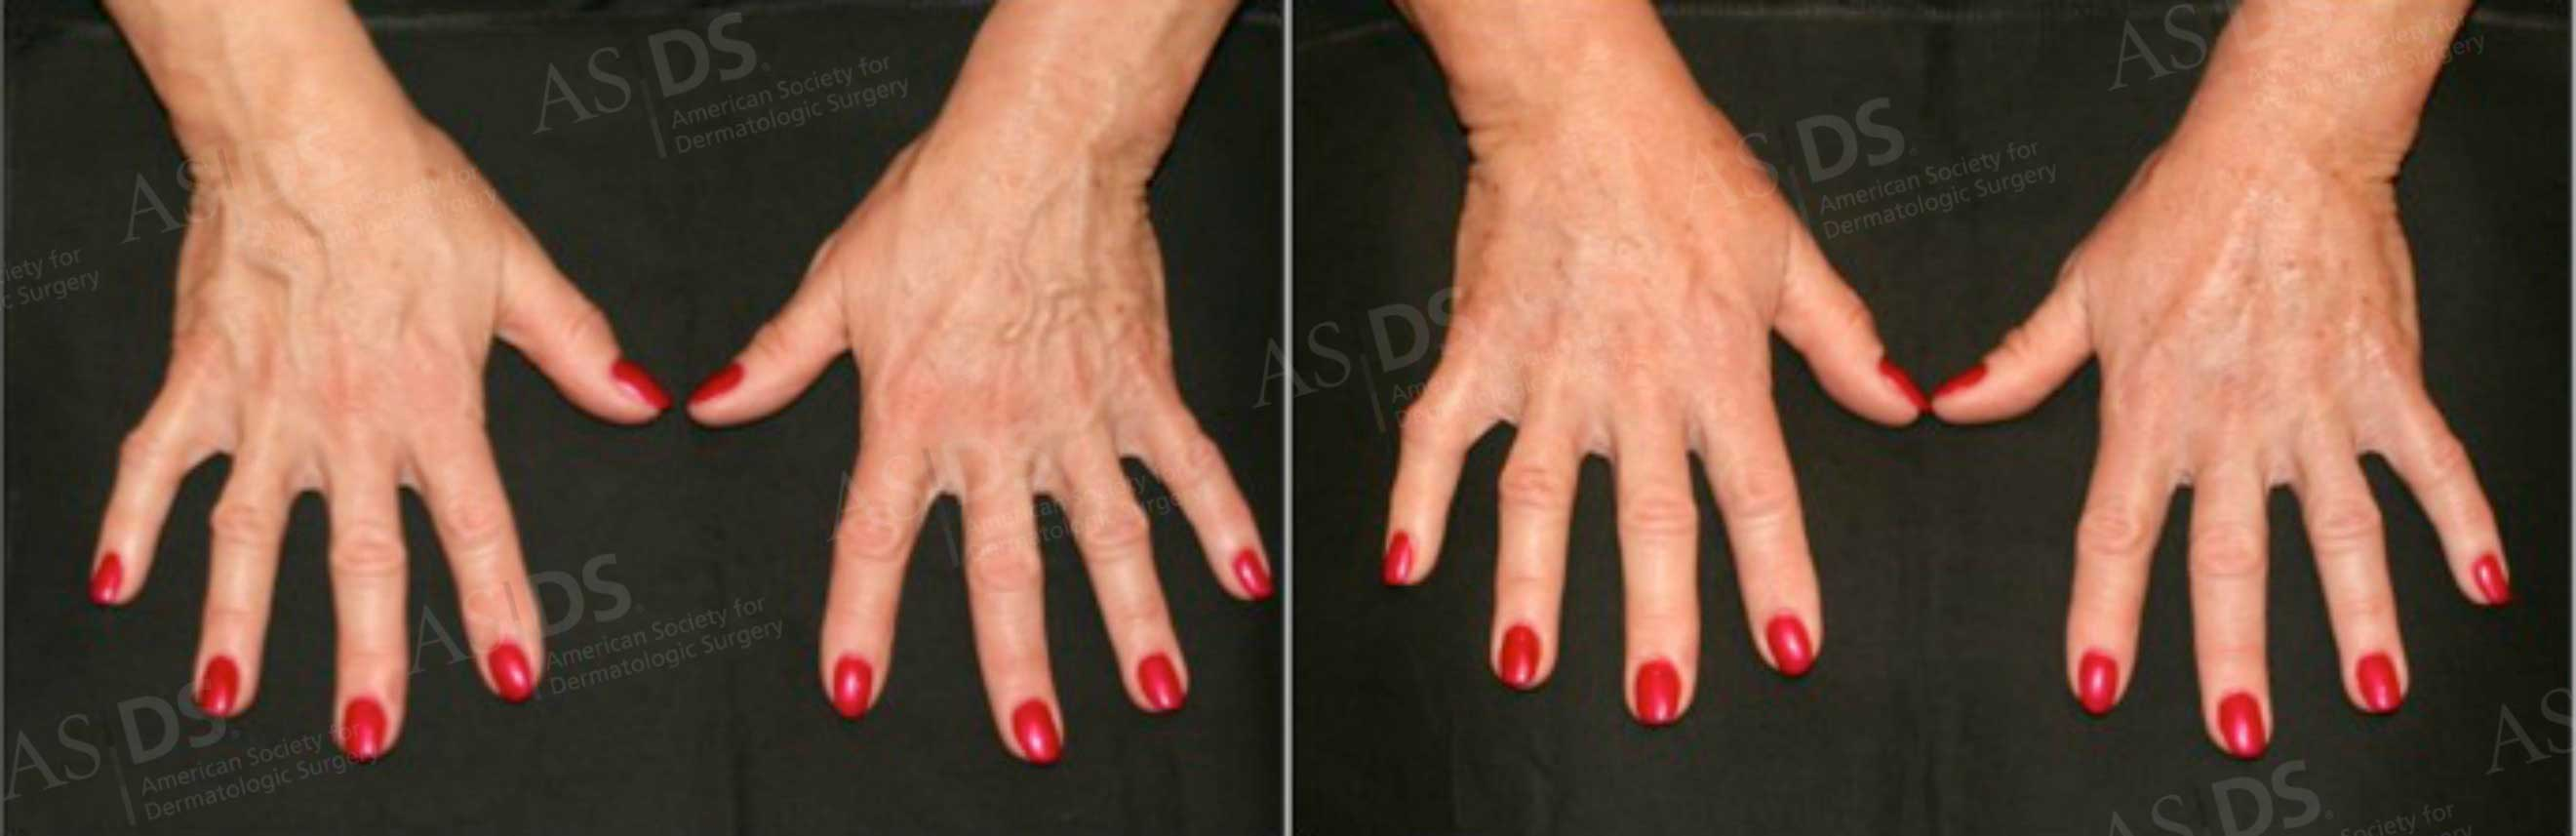 Before (left) and after (right) - hyaluronic acid injection to hands.